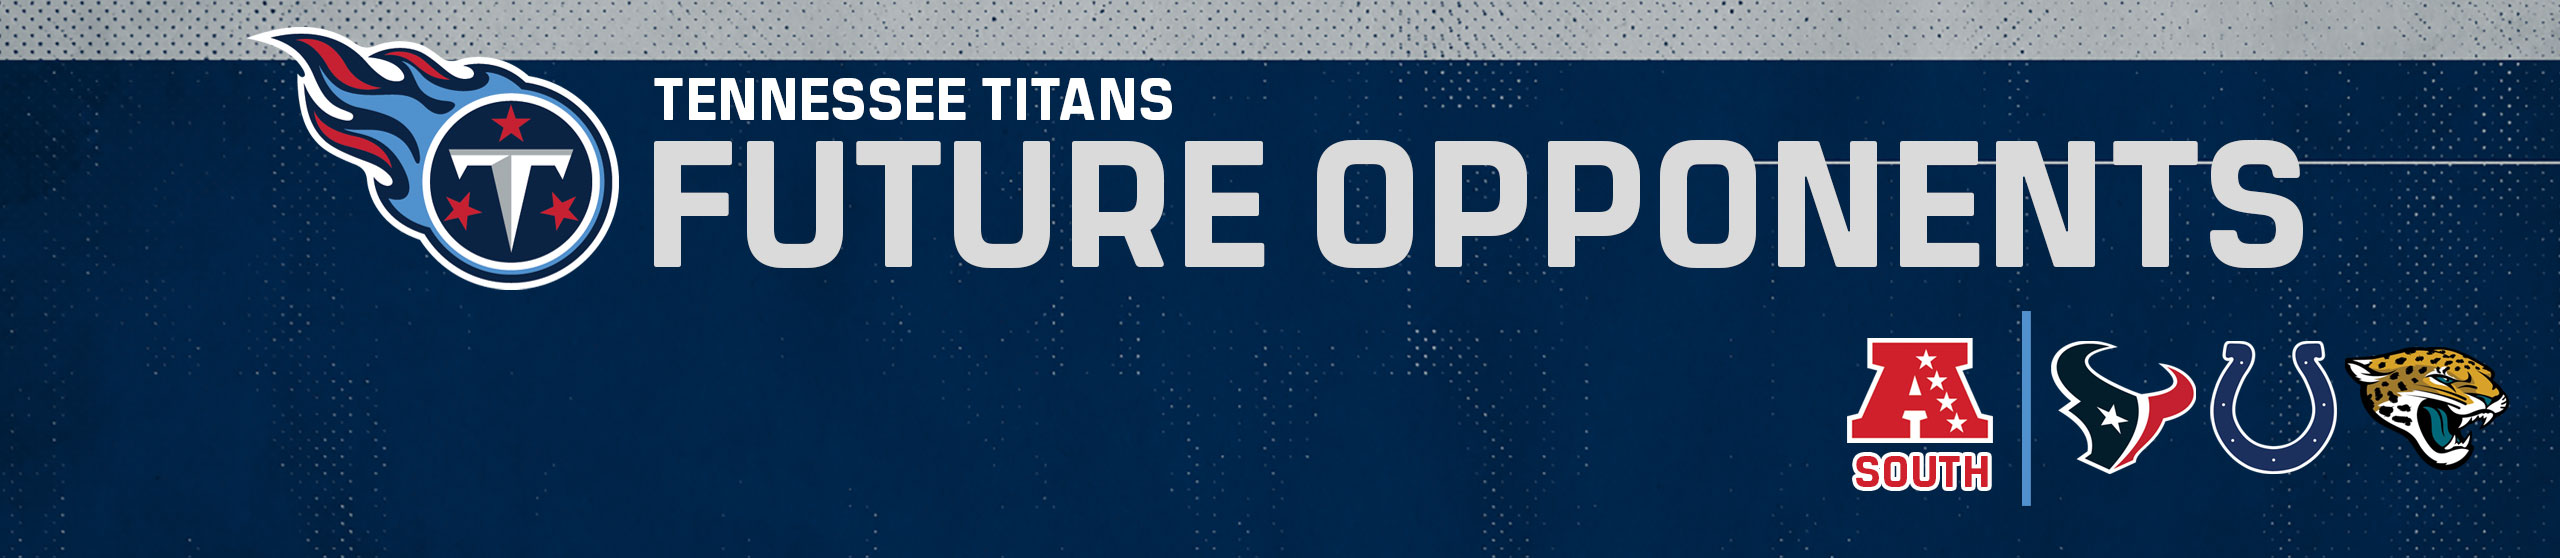 Tennessee Titans Future Opponents